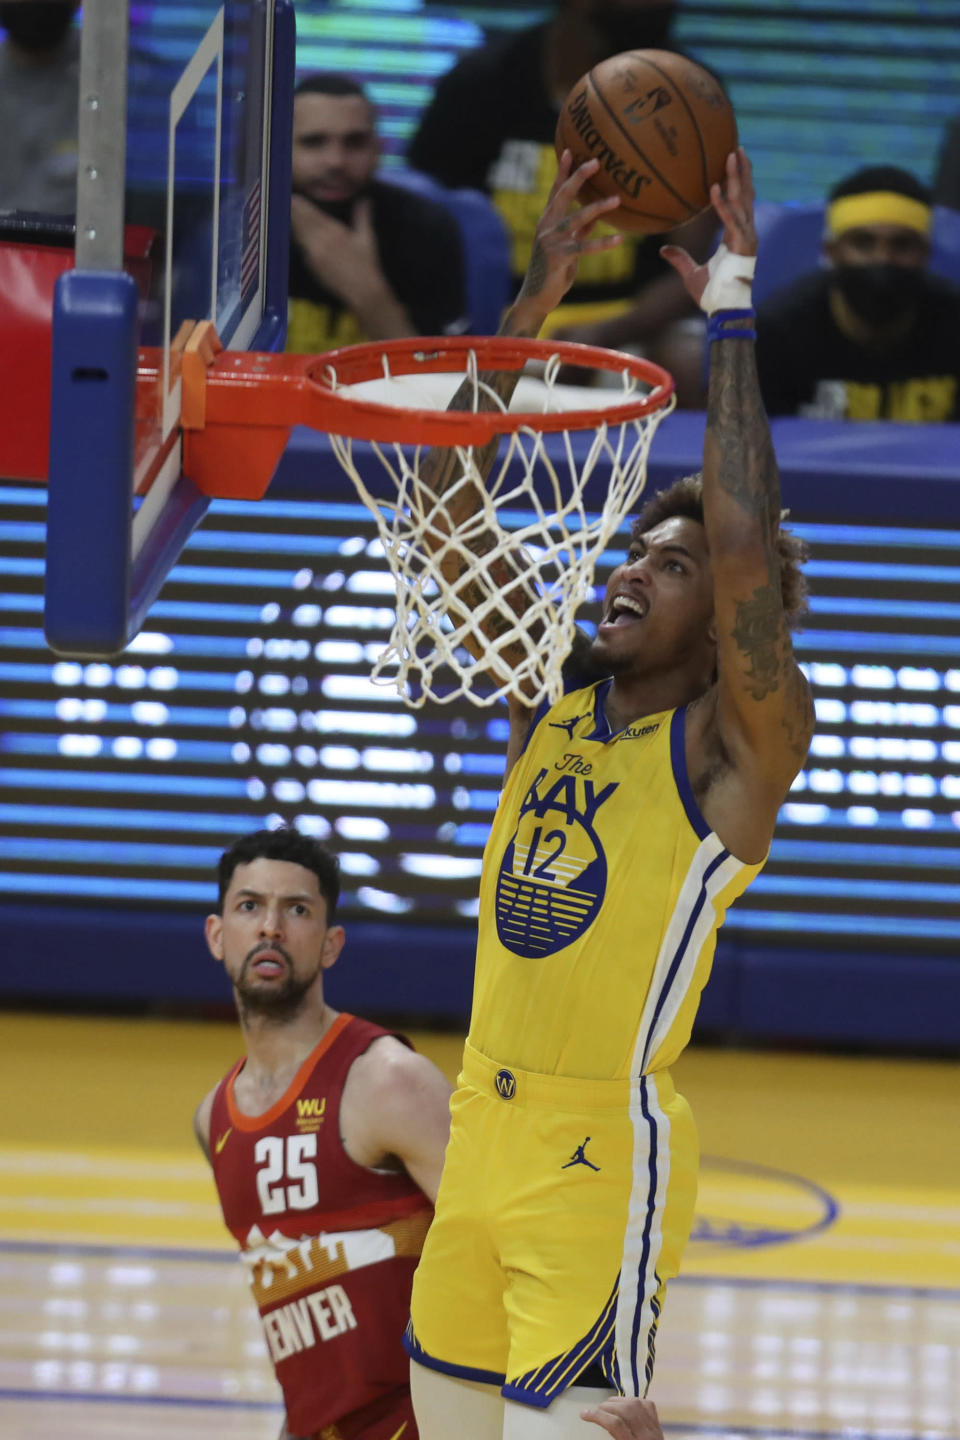 Golden State Warriors' Kelly Oubre Jr, right, shoots against Denver Nuggets' Austin Rivers during the first half of an NBA basketball game in San Francisco, Friday, April 23, 2021. (AP Photo/Jed Jacobsohn)